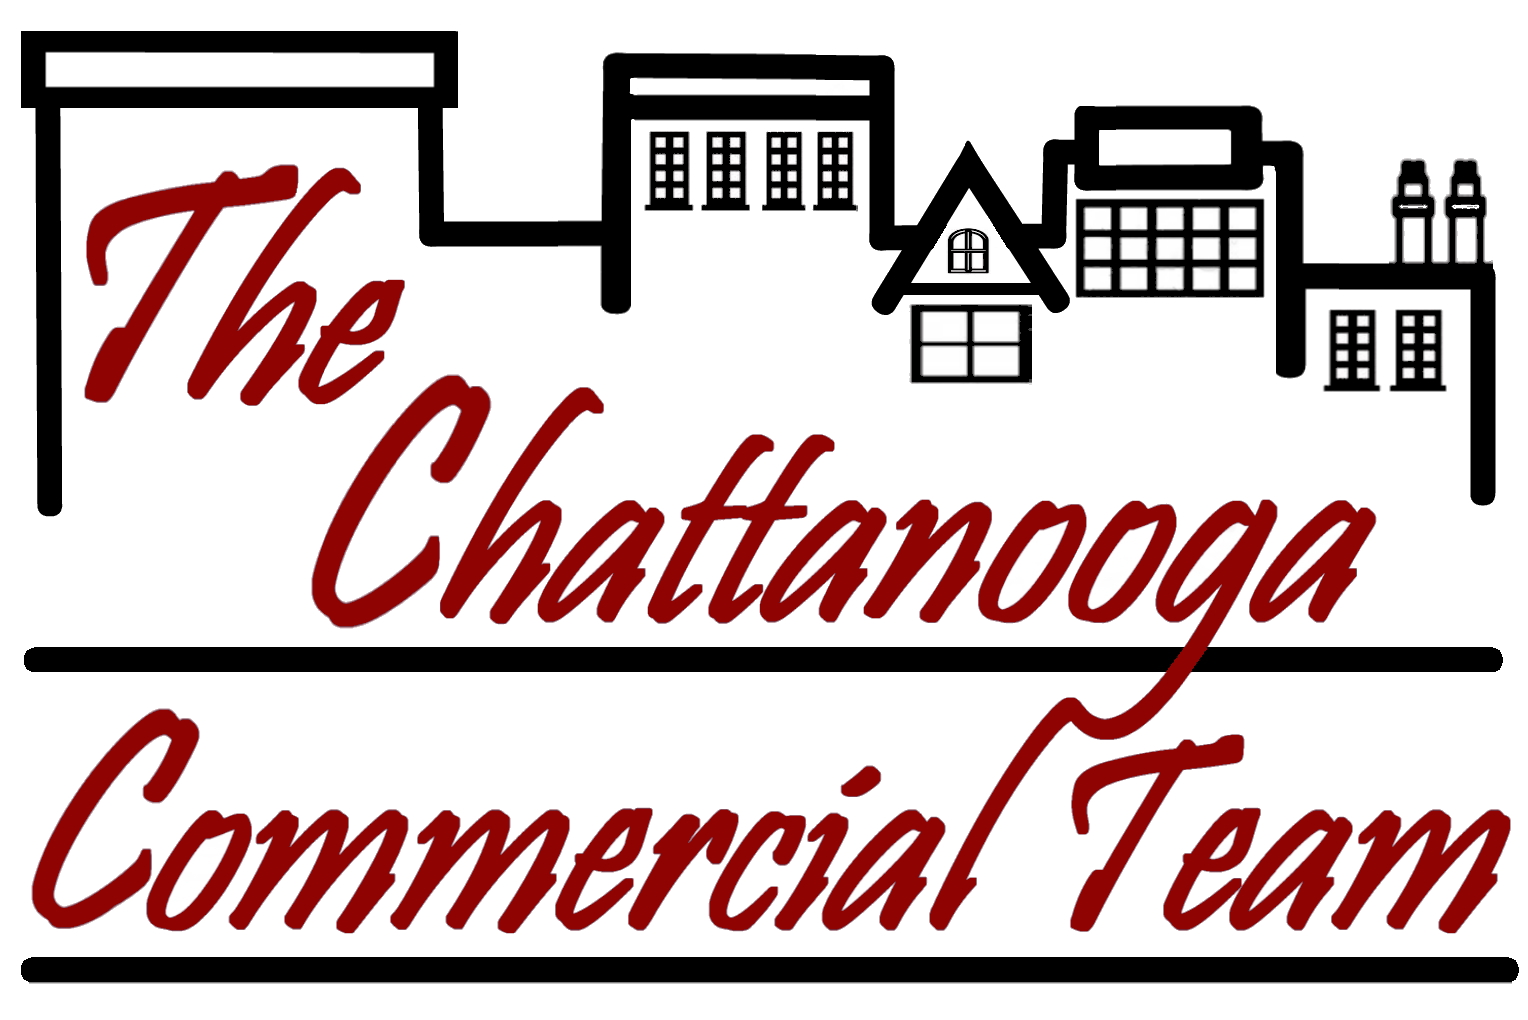 The Chattanooga Commercial Team